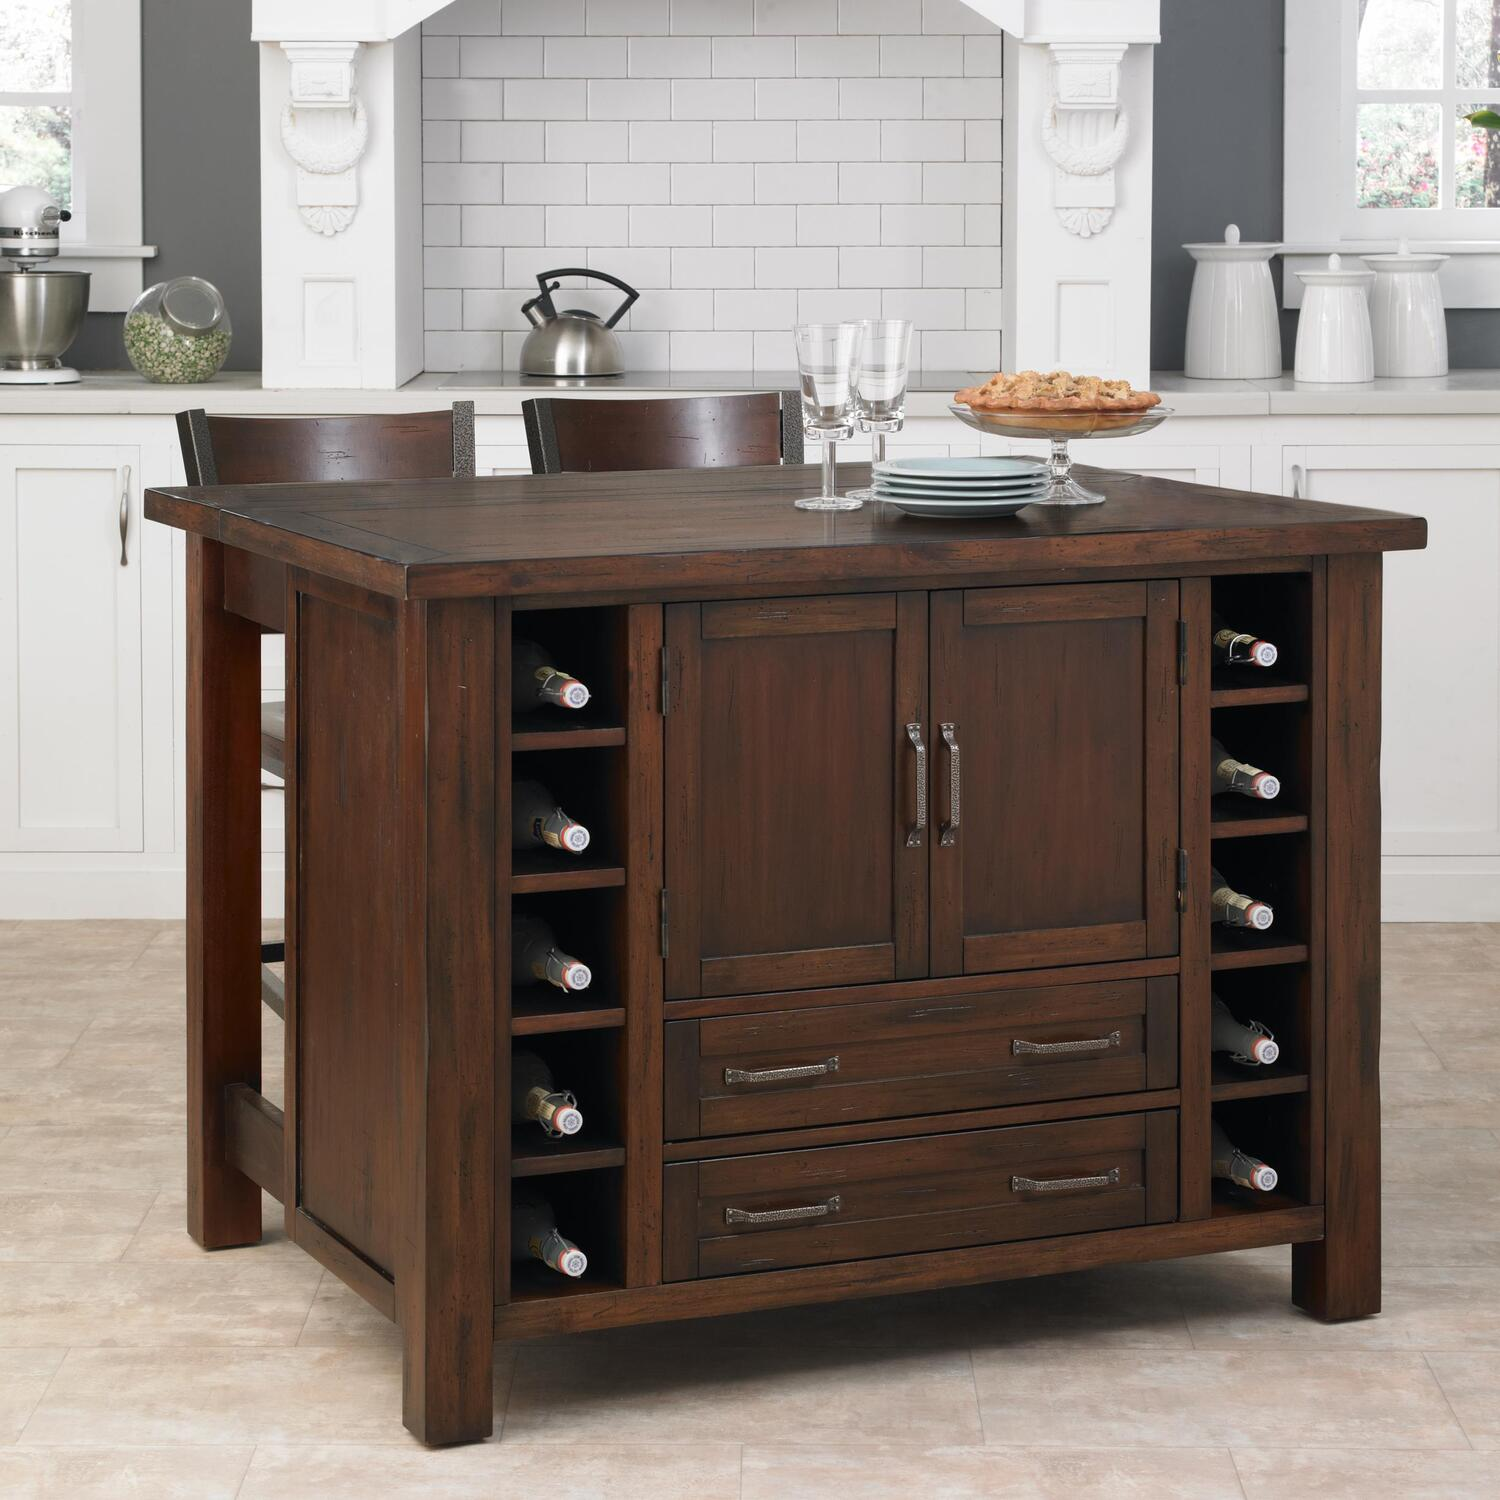 Home styles cabin creek kitchen island with breakfast bar for Bar stools for kitchen island